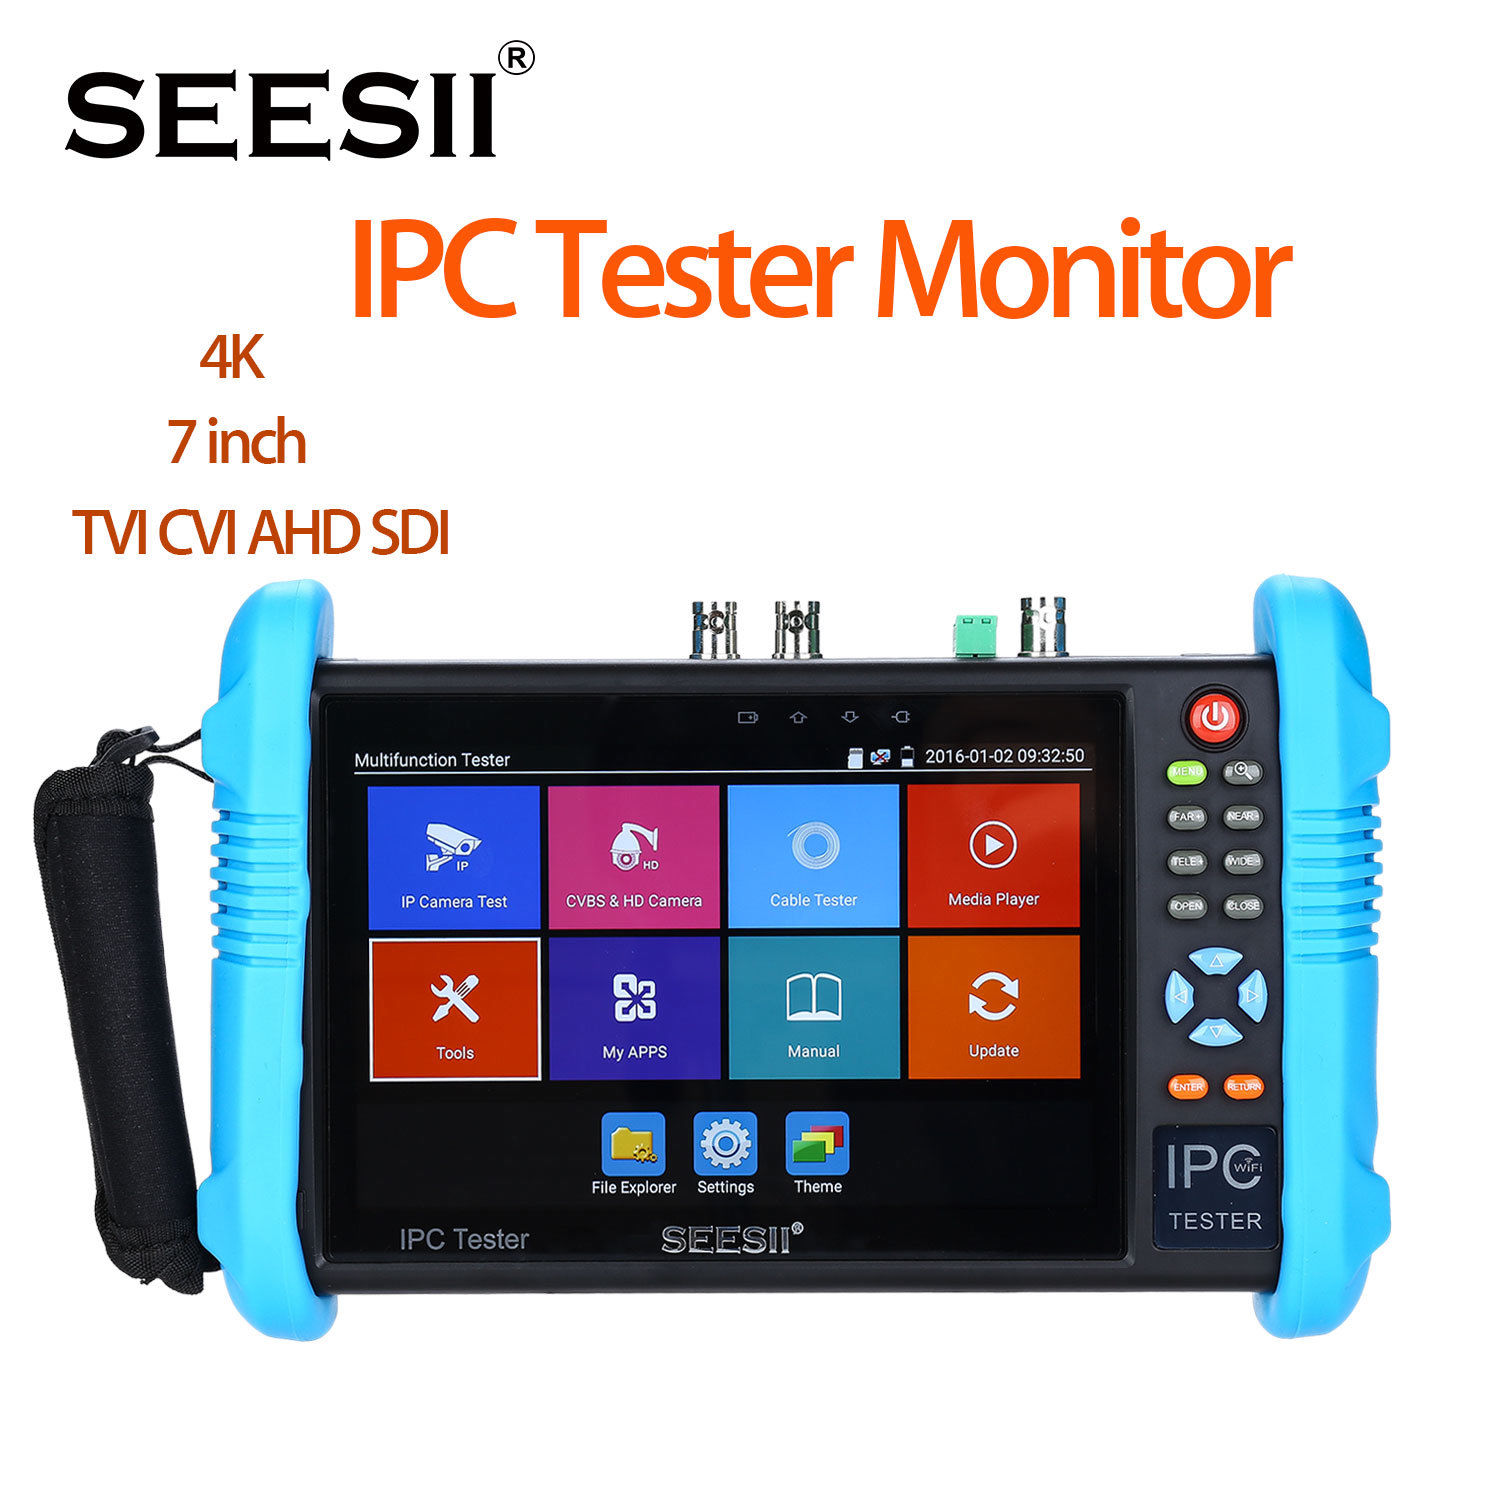 SEESII IPC 9800ADHSPLUS 7 IP Camera Tester 4K 1080P IPC CCTV TVI SDI CVBS Analog Video Test HDMI PTZ Control Touch Screen H.265